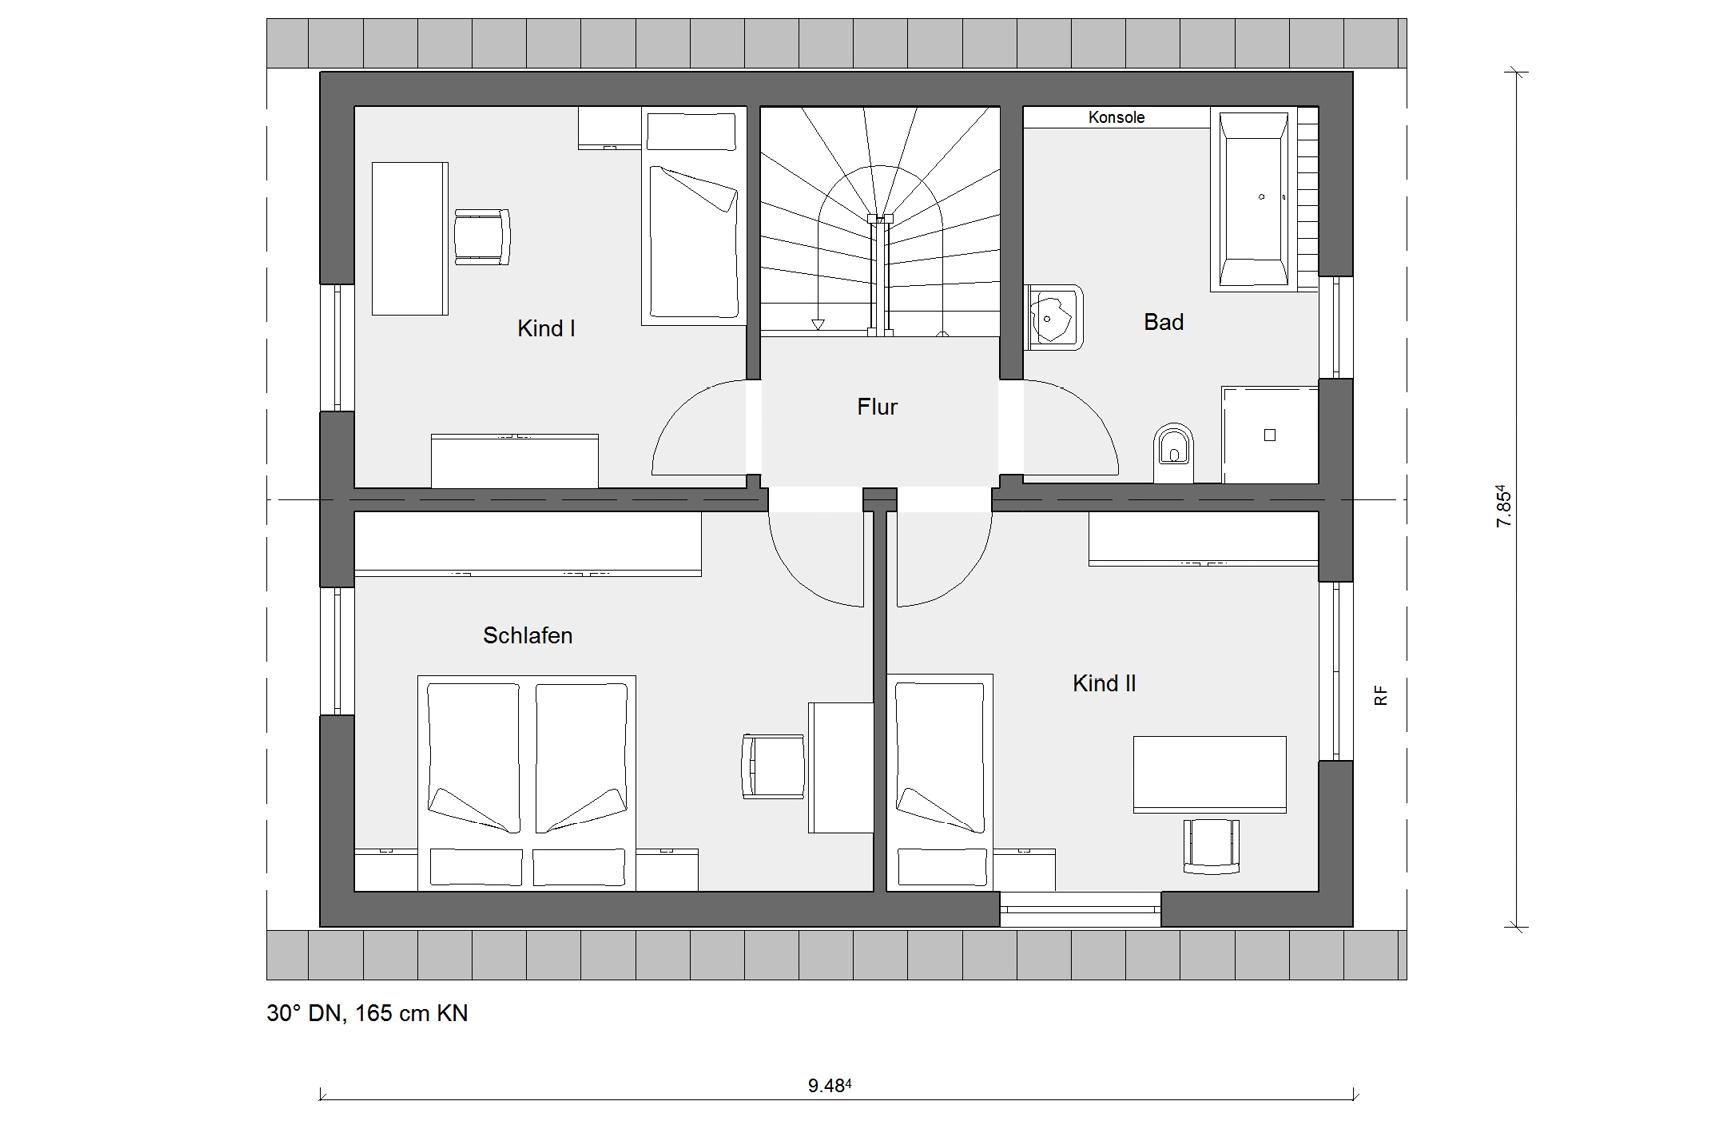 Floor plan top floor E 15-121.9 House with pitched roof